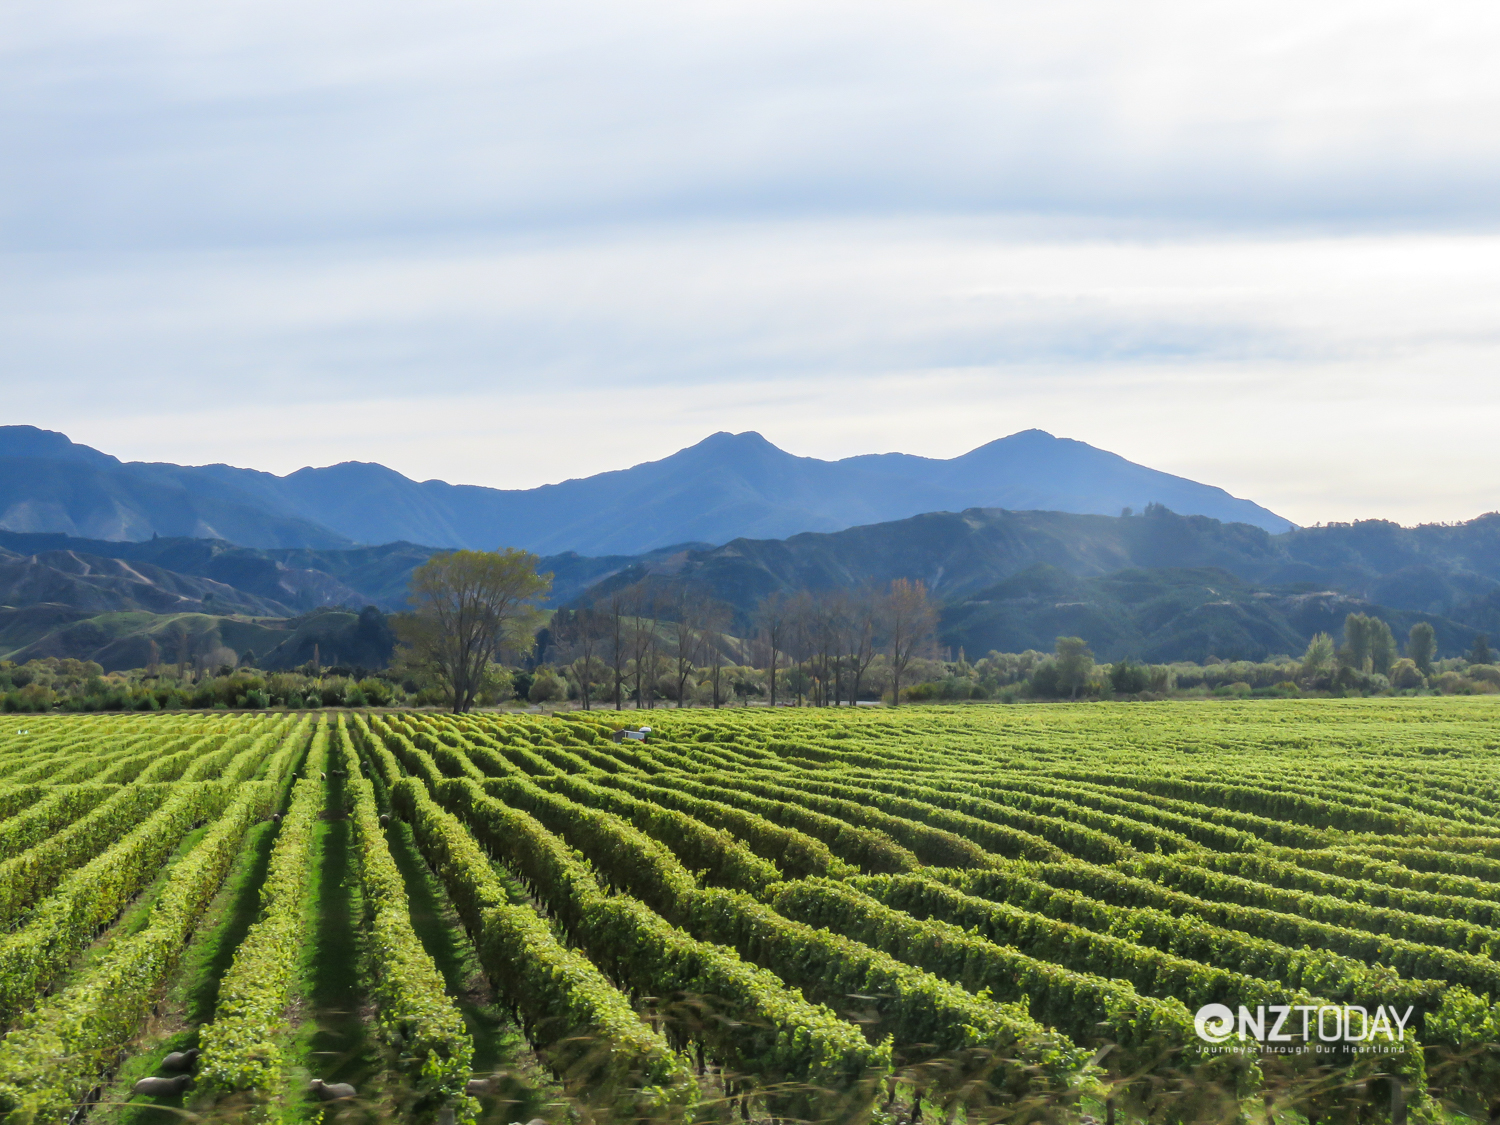 Just a few vines – one of the many Marlborough vineyards